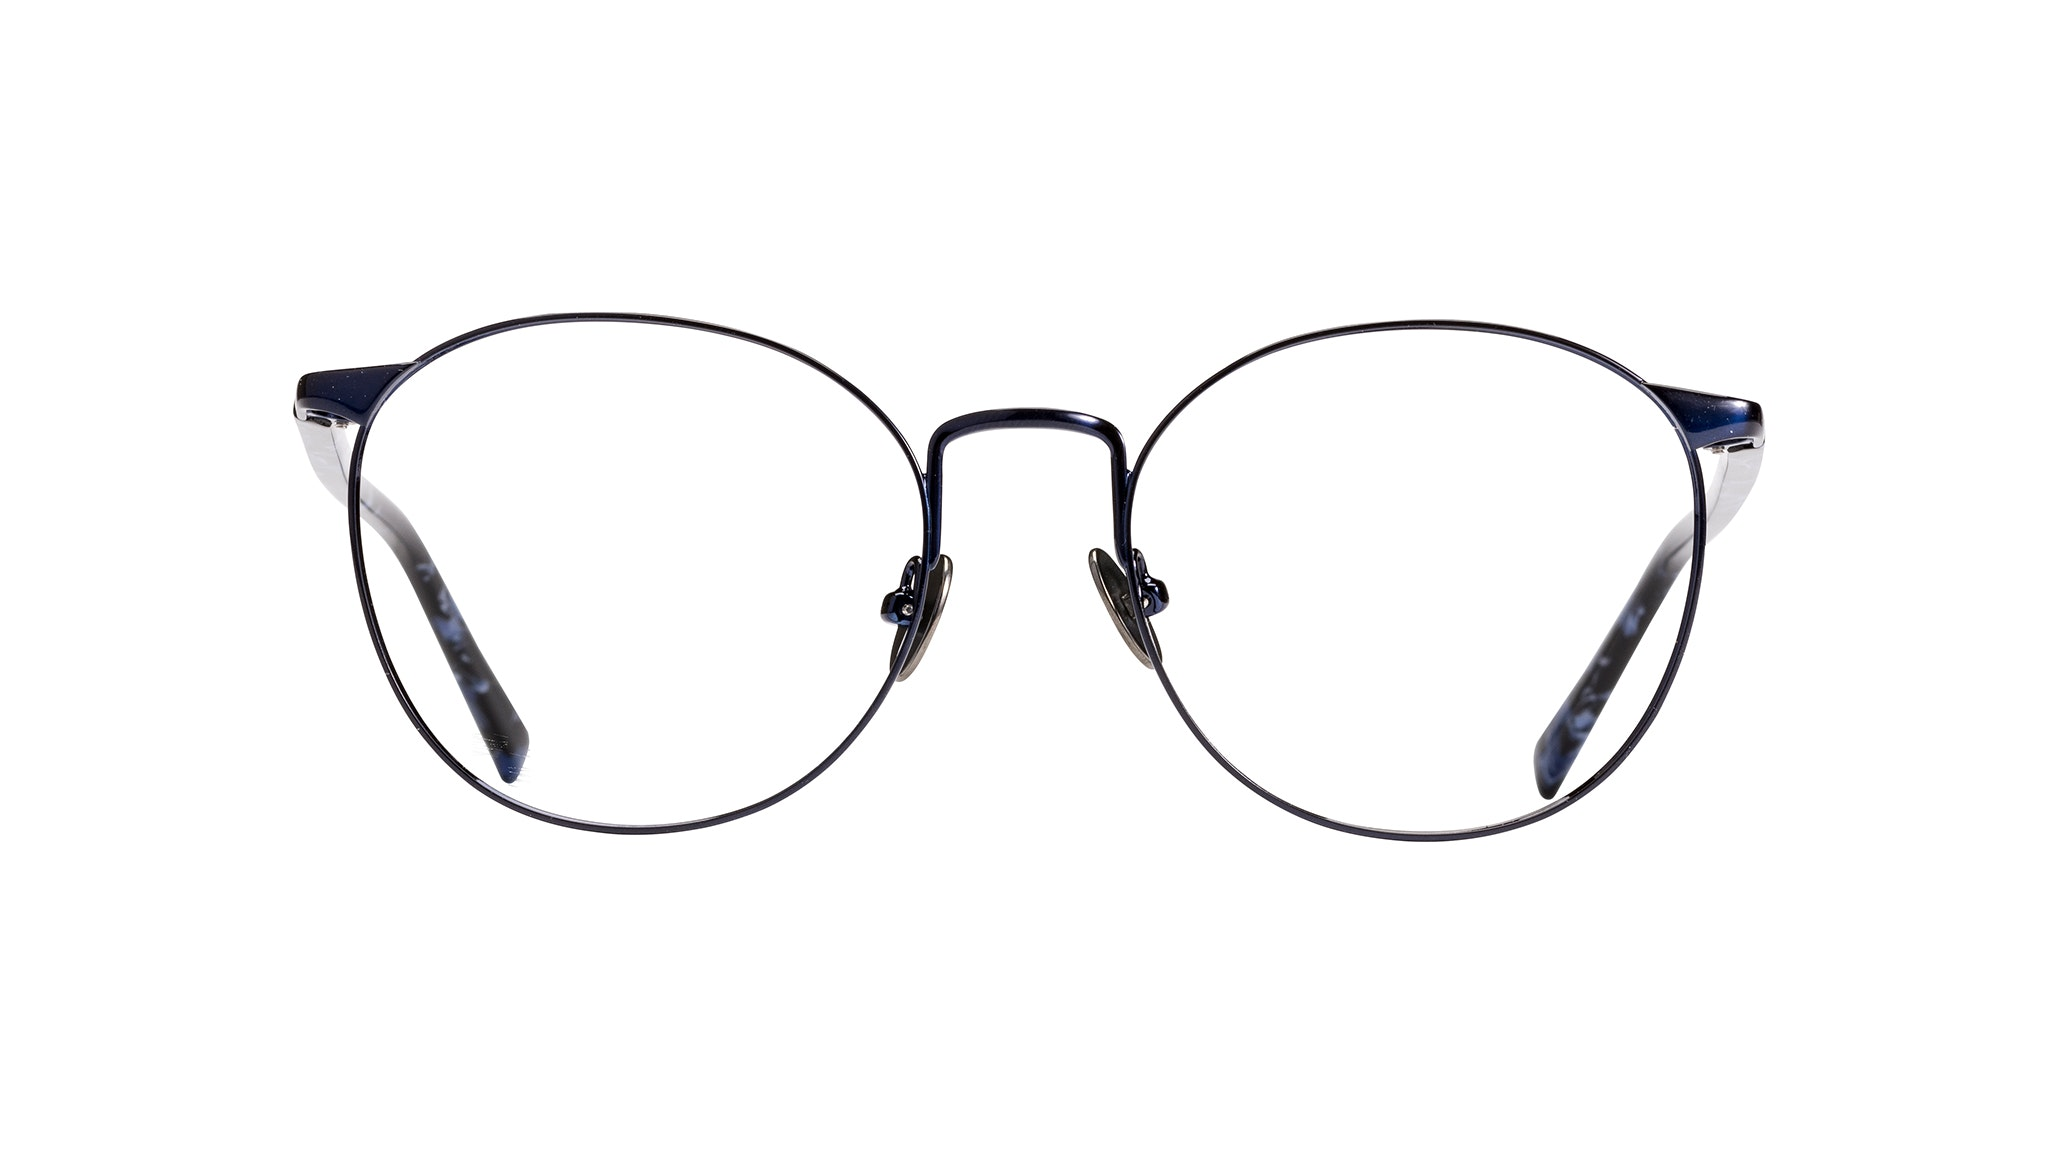 Affordable Fashion Glasses Round Eyeglasses Women Romy Penombre